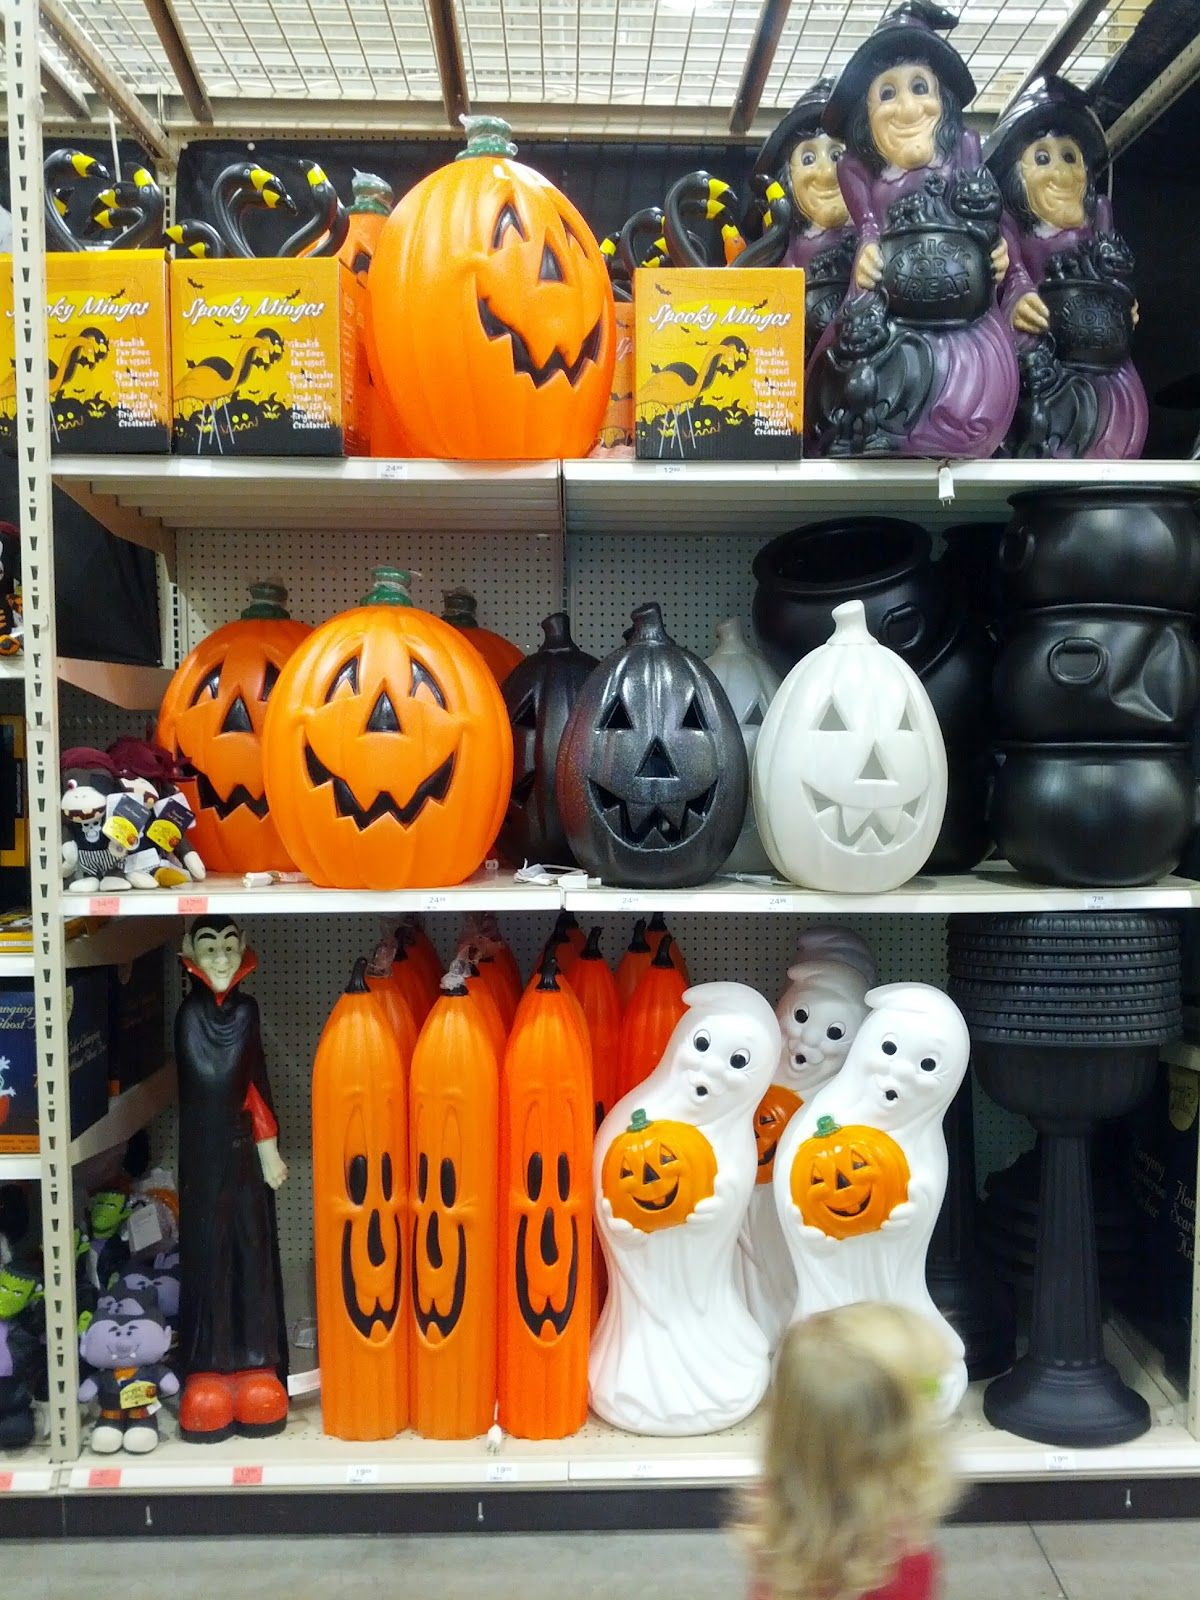 blowmolds jakeparrillocom menards halloween blowmolds 2012 - Menards Halloween Decorations